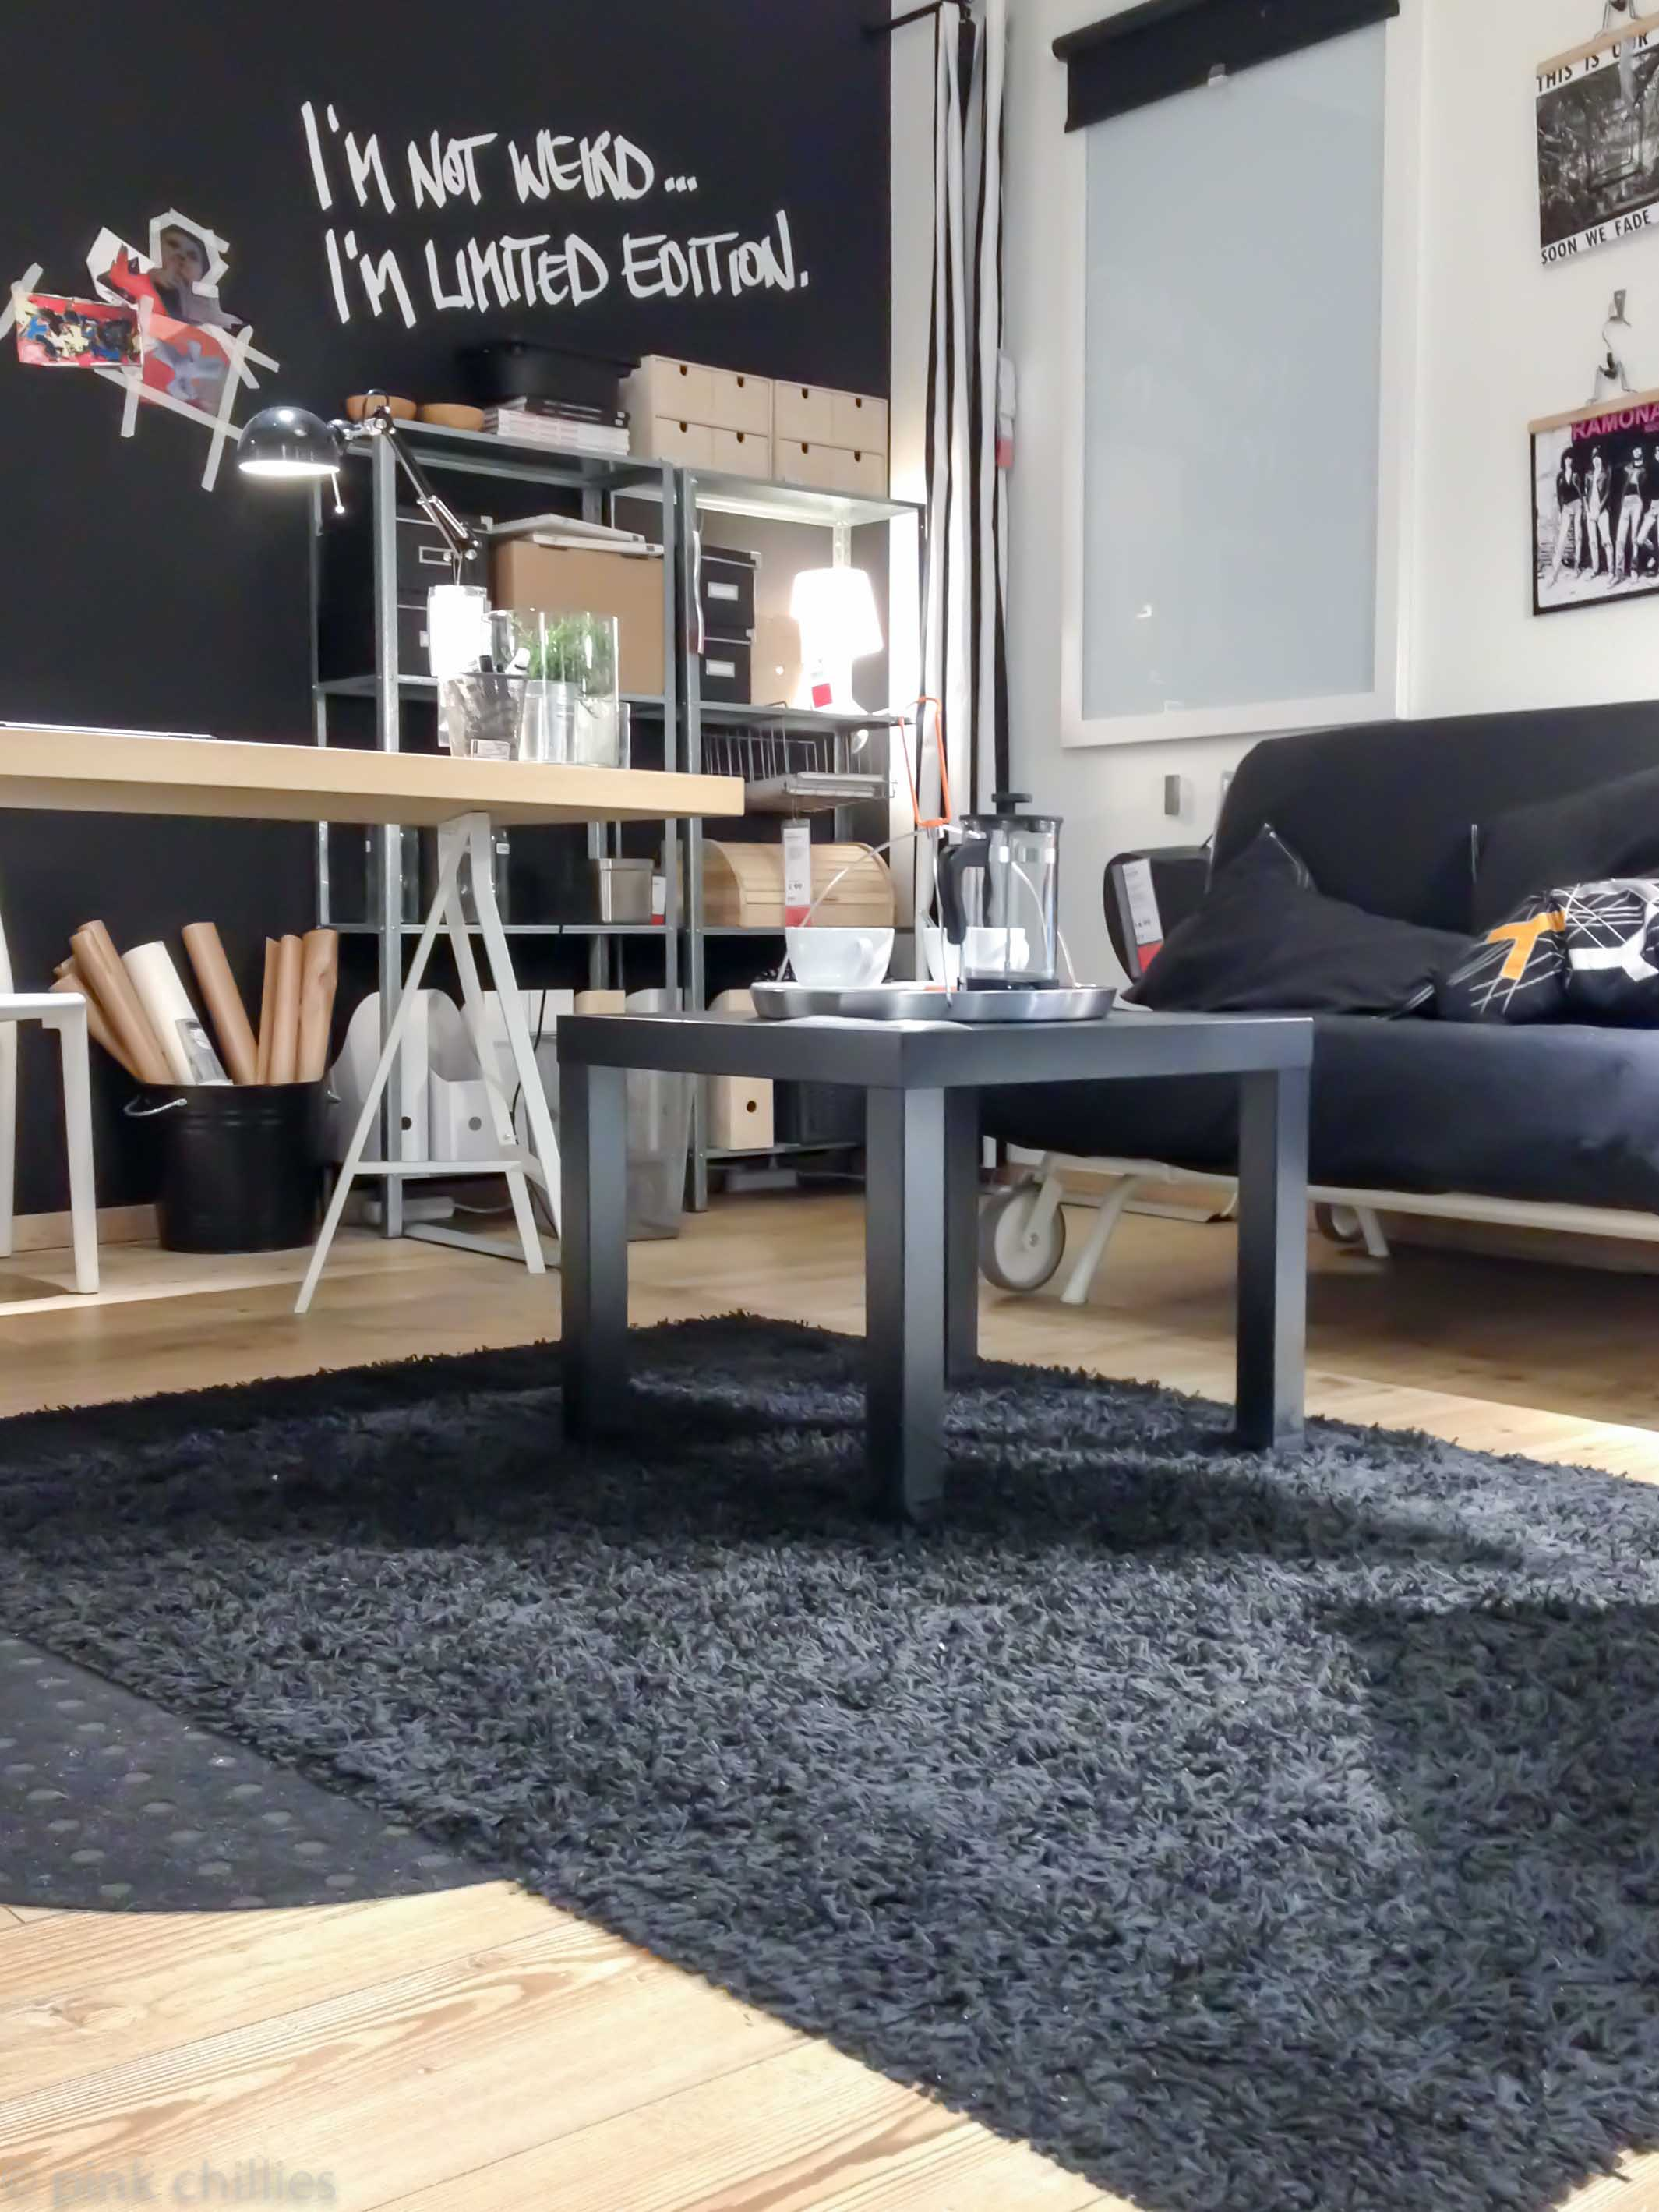 meine woche in bildern kw 2 pink chillies. Black Bedroom Furniture Sets. Home Design Ideas